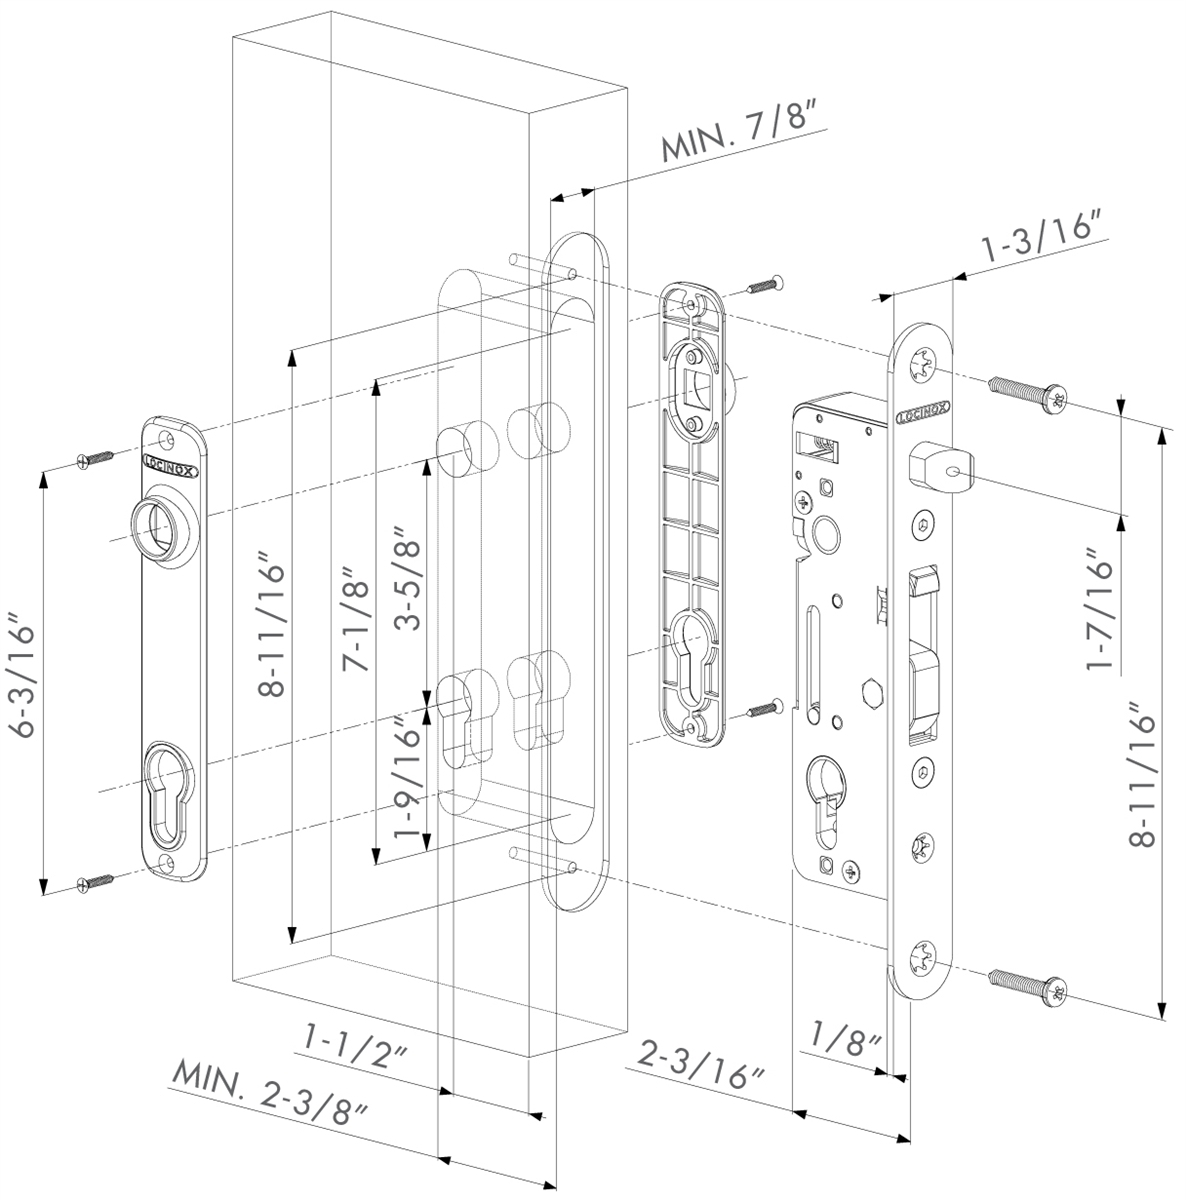 hight resolution of locknetics maglock wiring diagram locinox h metal wb mortise lock for ornamental gates fits welding